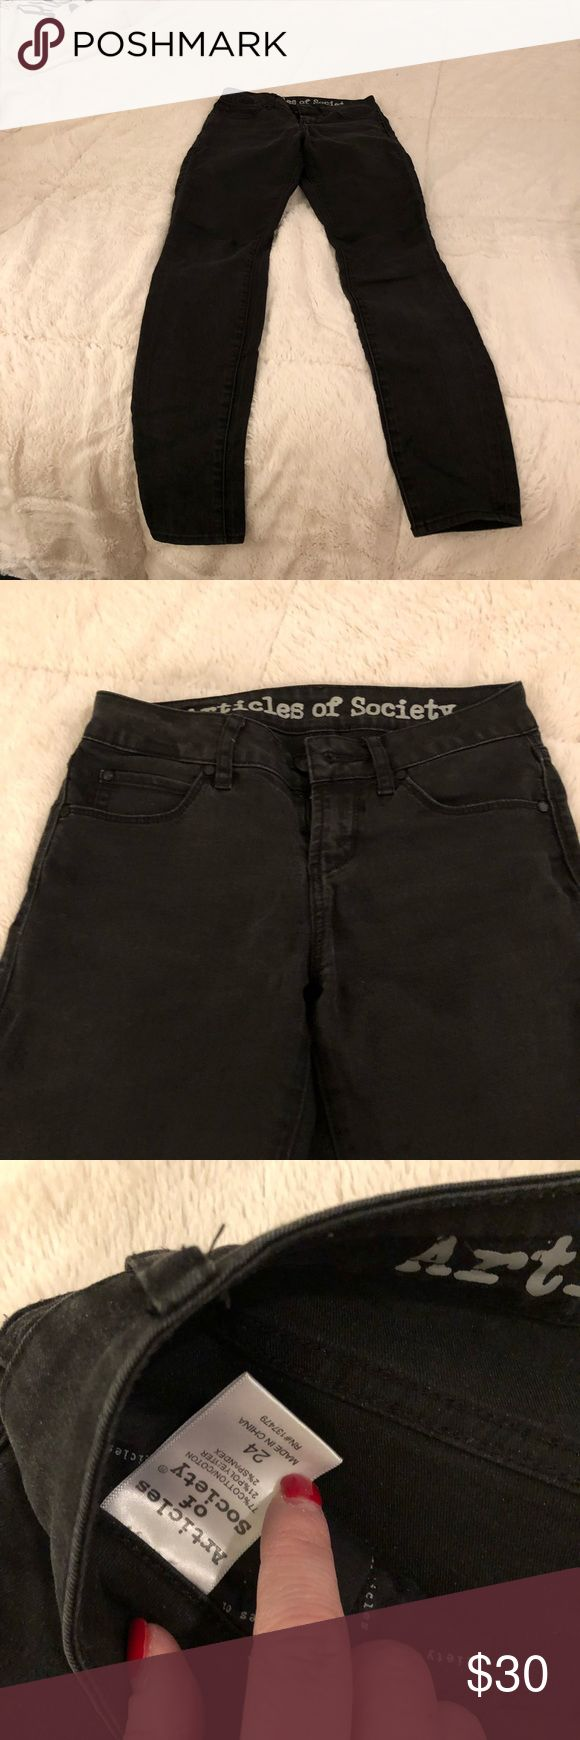 Articles of Society Faded Black Jeans Articles of Society Faded Black Jeans  BUNDLE w/ 1 FREE JEWELRY ITEM Articles Of Society Jeans Skinny